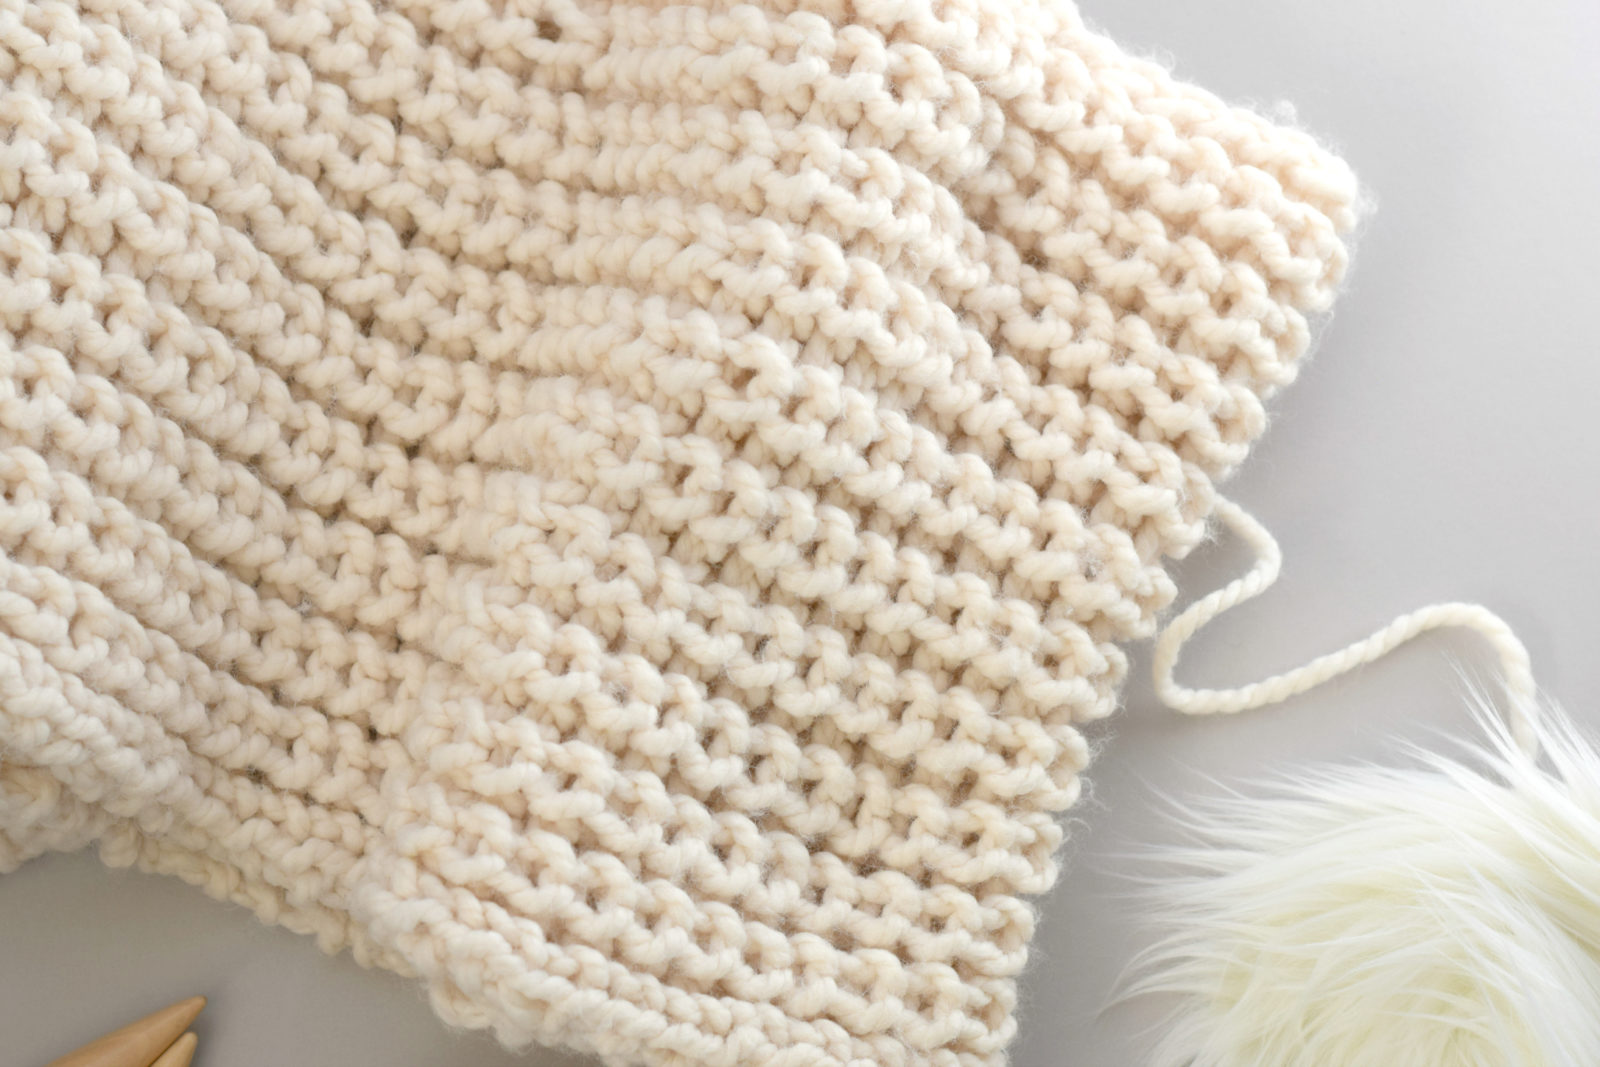 How To Knit Half Fisherman Rib Stitch Mama In A Stitch